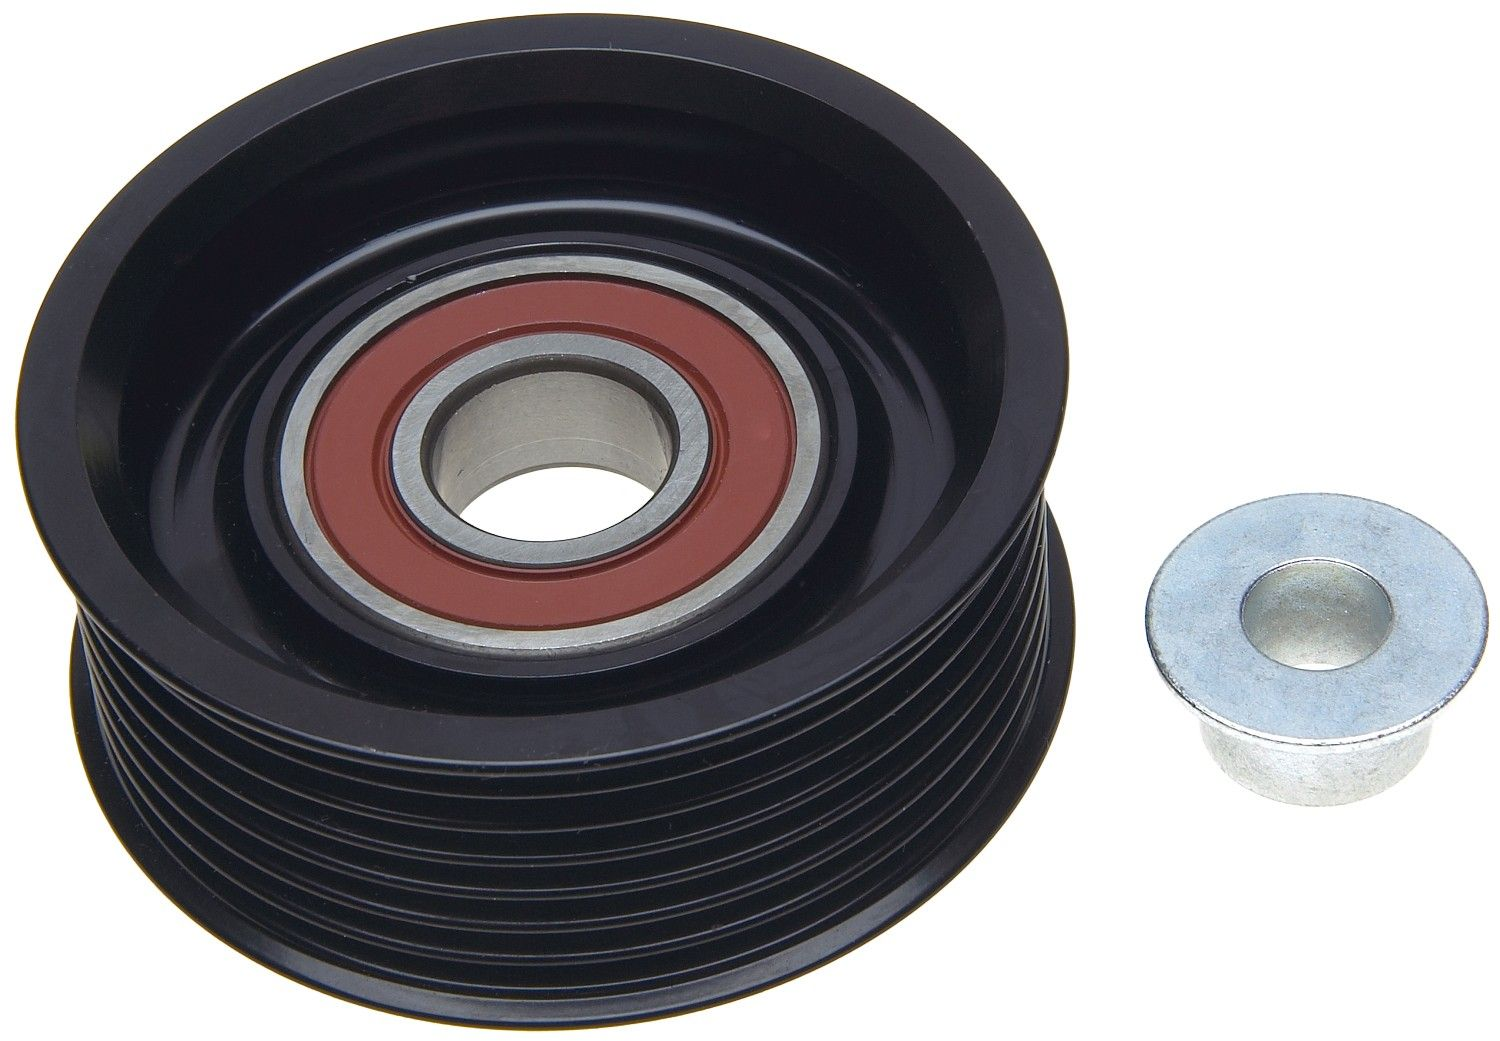 Nissan Frontier Drive Belt Idler Pulley Replacement Dayco Four Diagram 2015 6 Cyl 40l Gates 36222